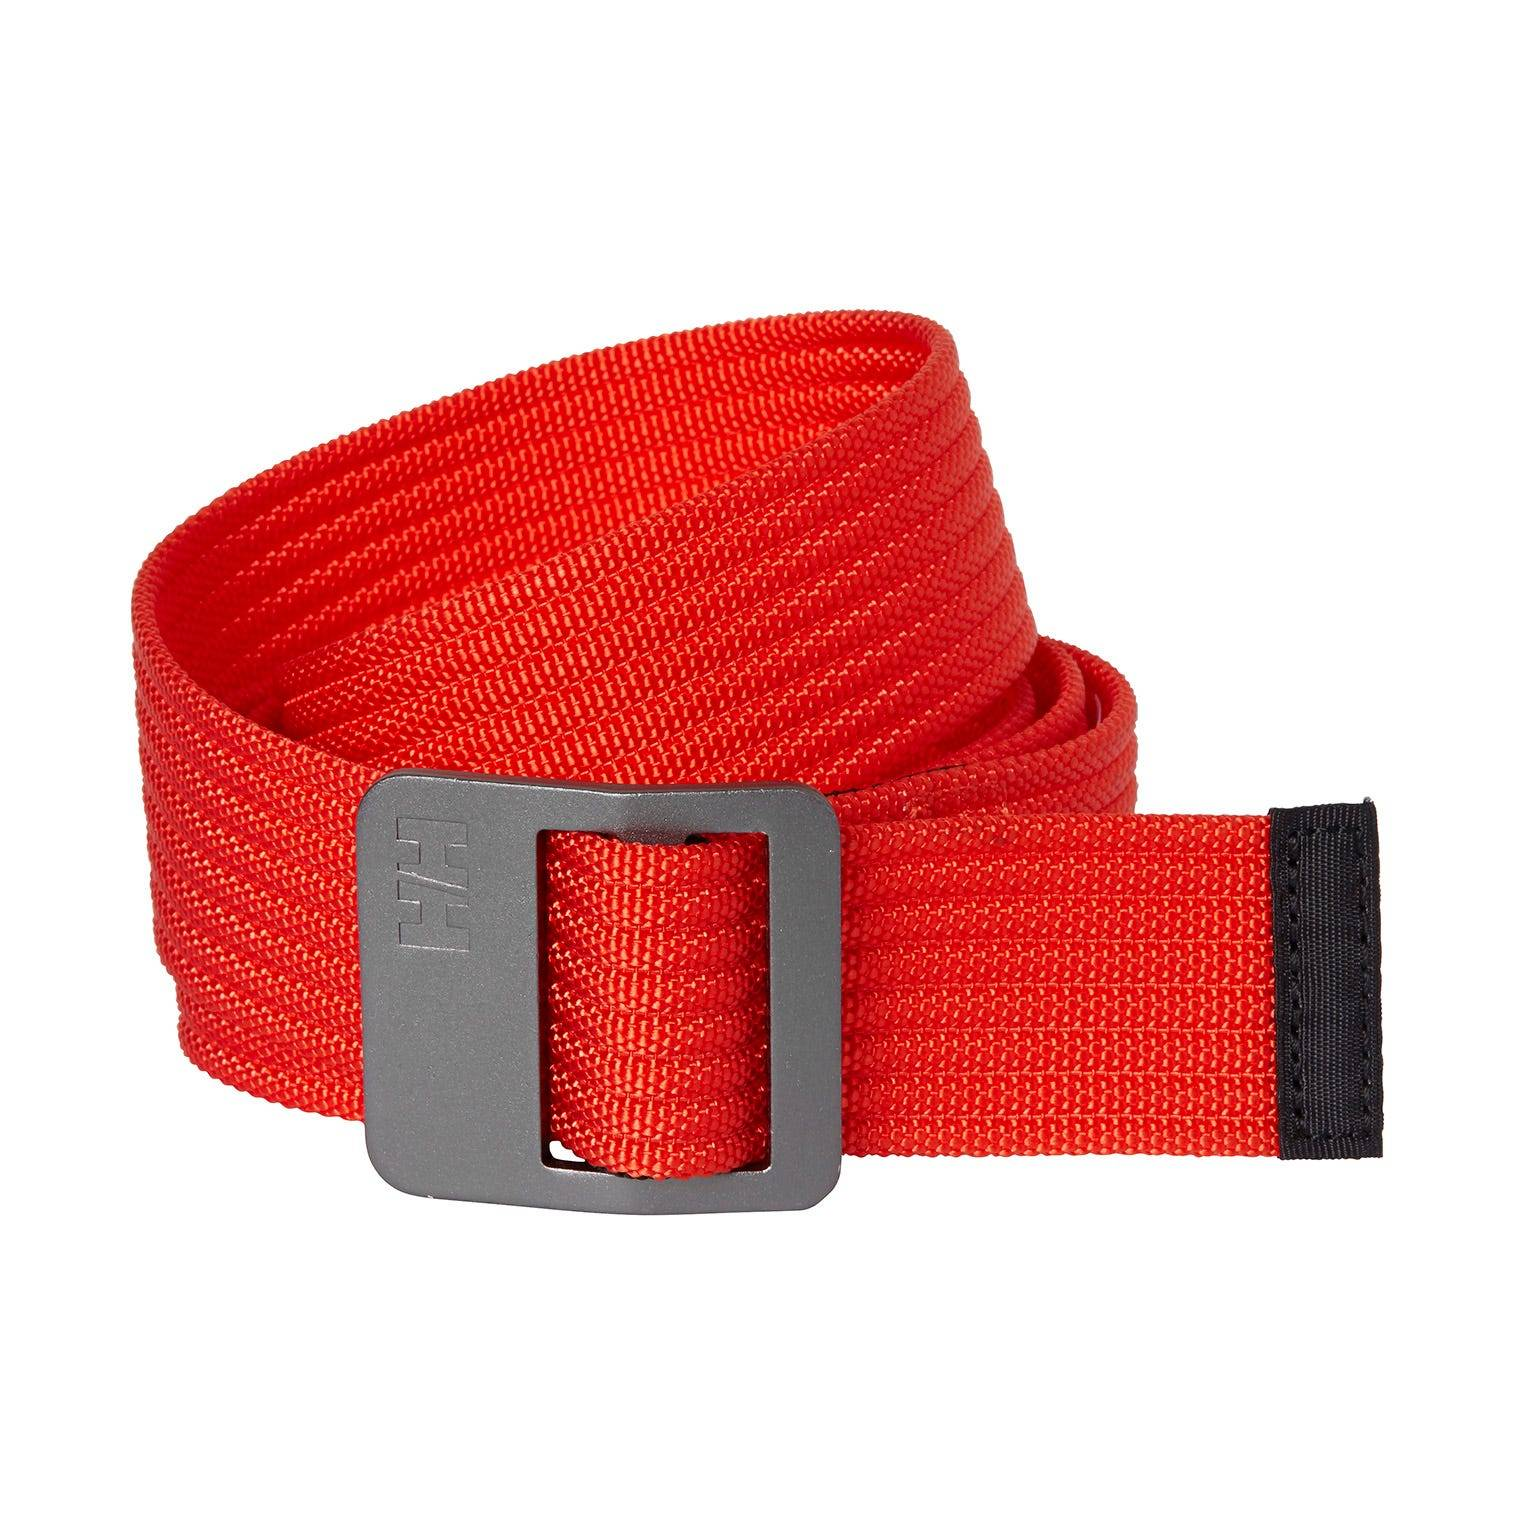 Helly Hansen Webbing Belt Red 130